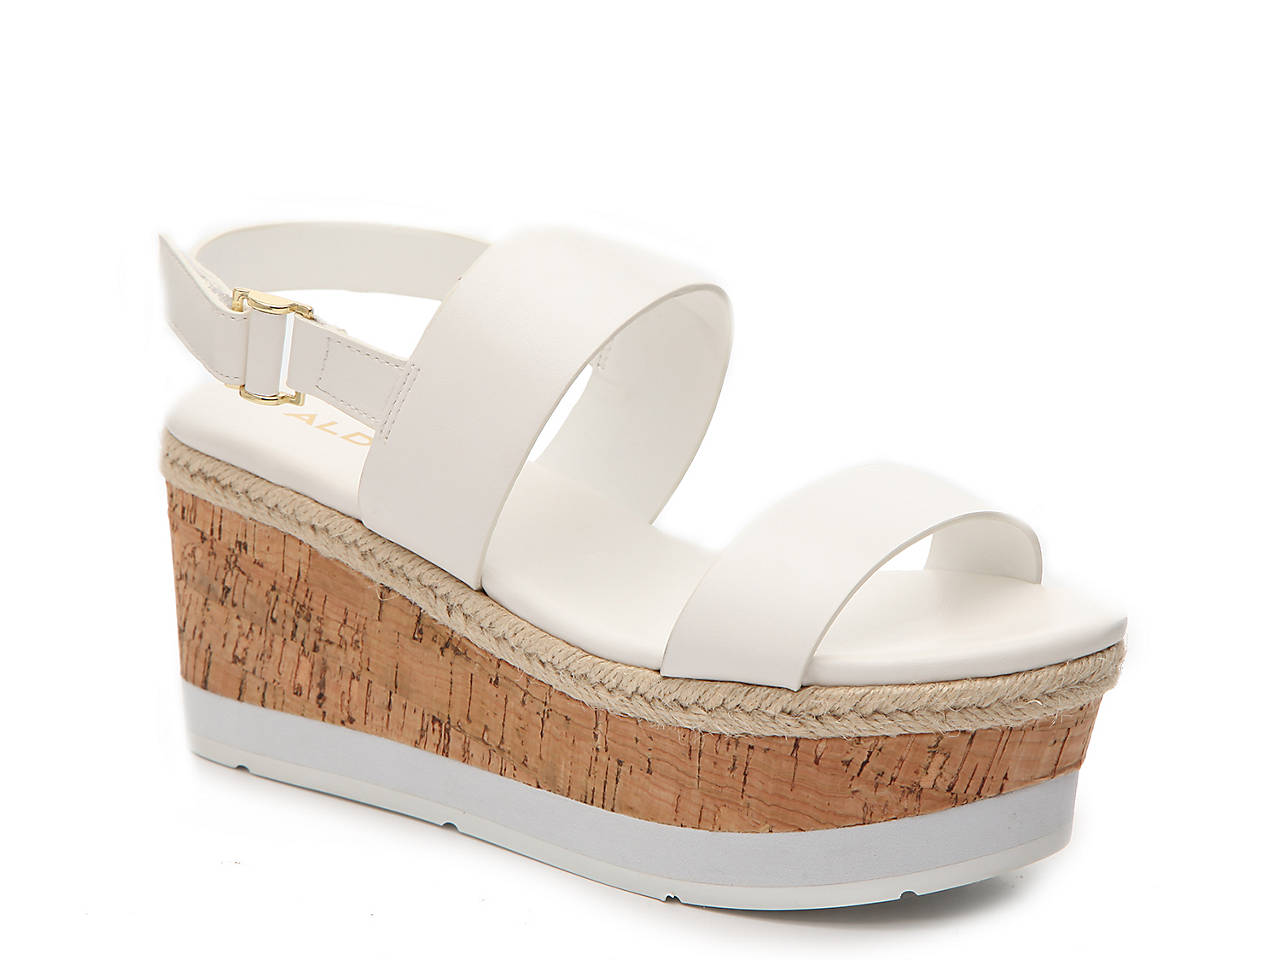 29e6dcc234a Aldo Erillan Espadrille Wedge Sandal Women s Shoes